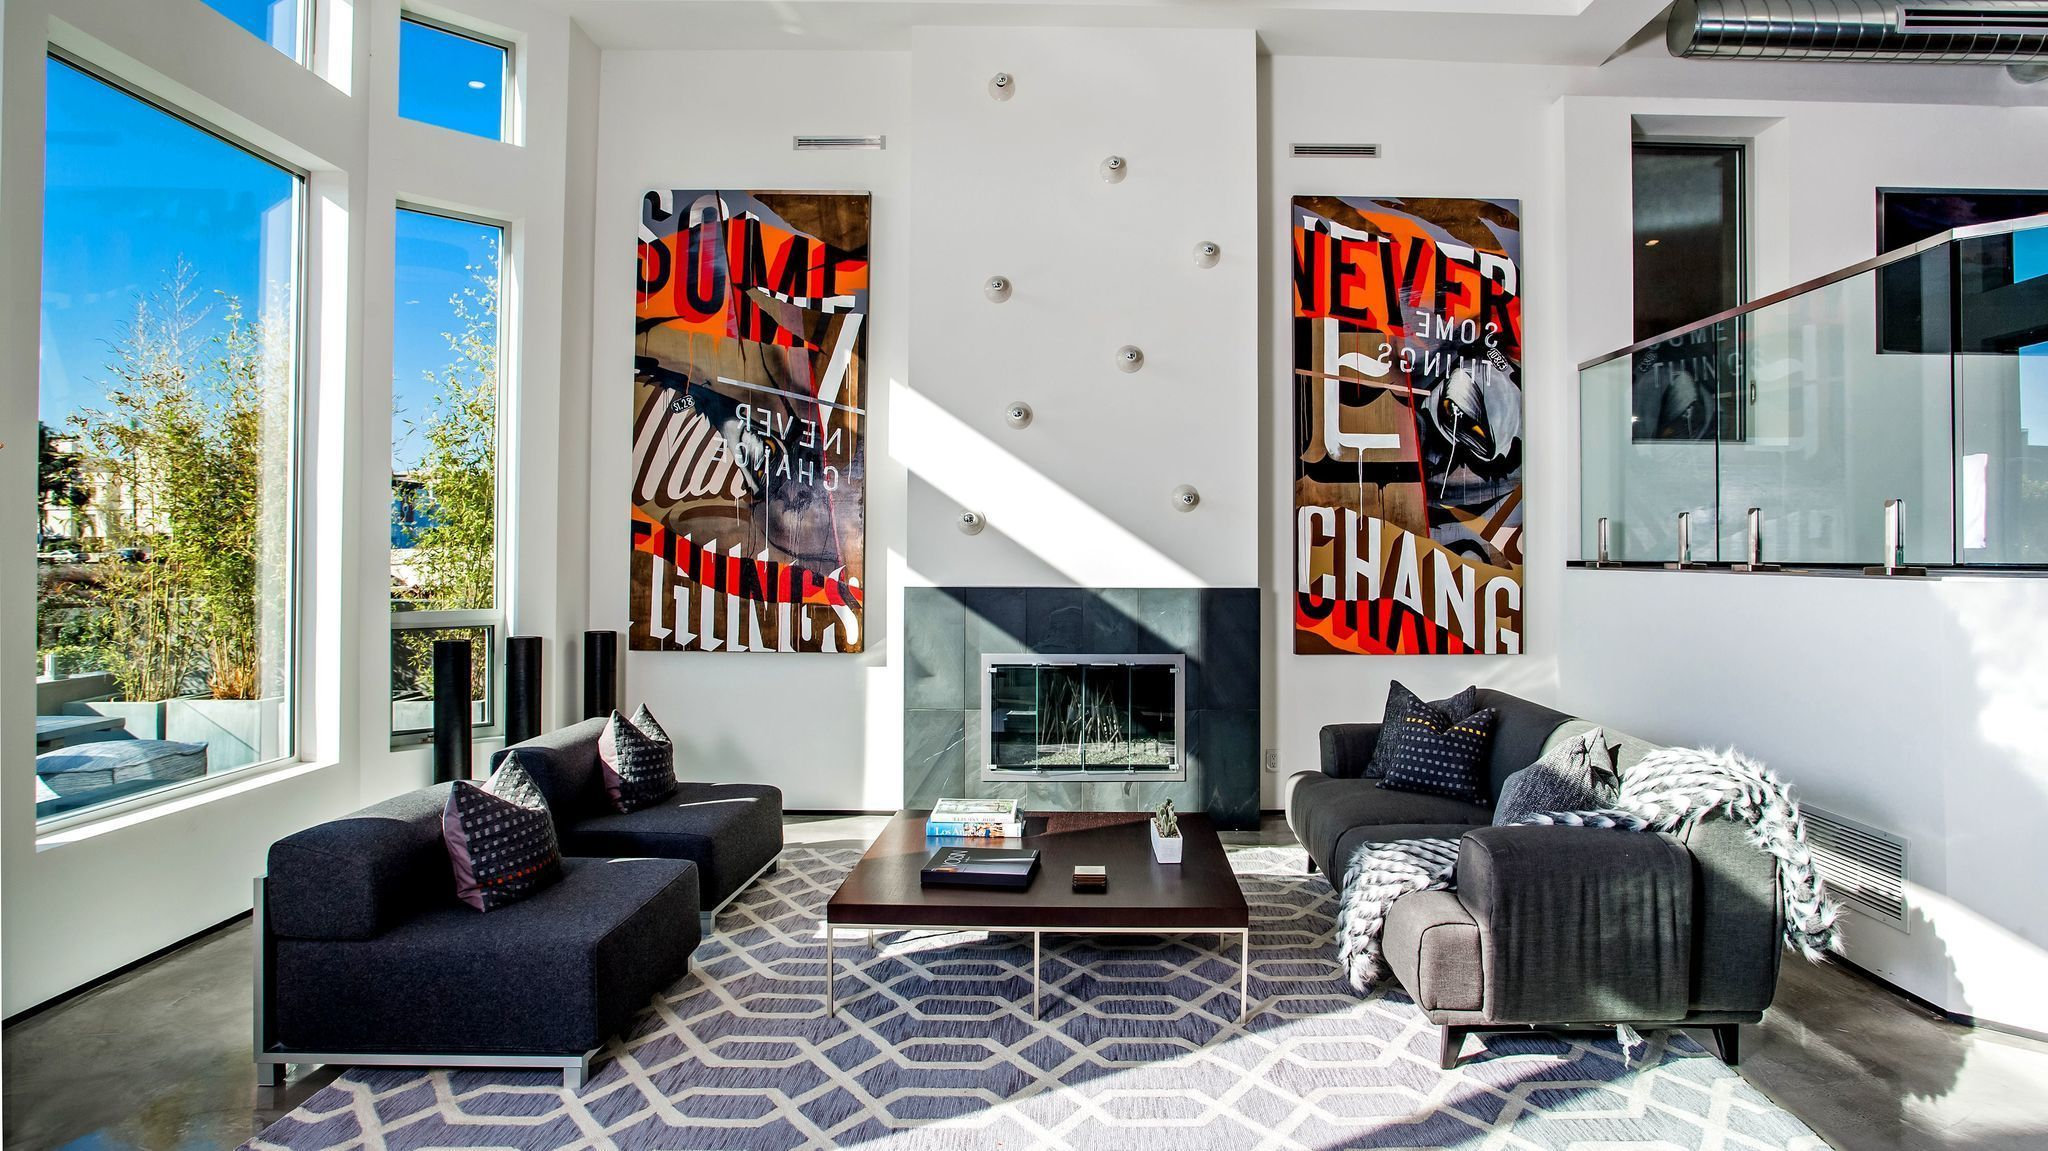 fireplace upgrades focus on cool as well as on heat la times